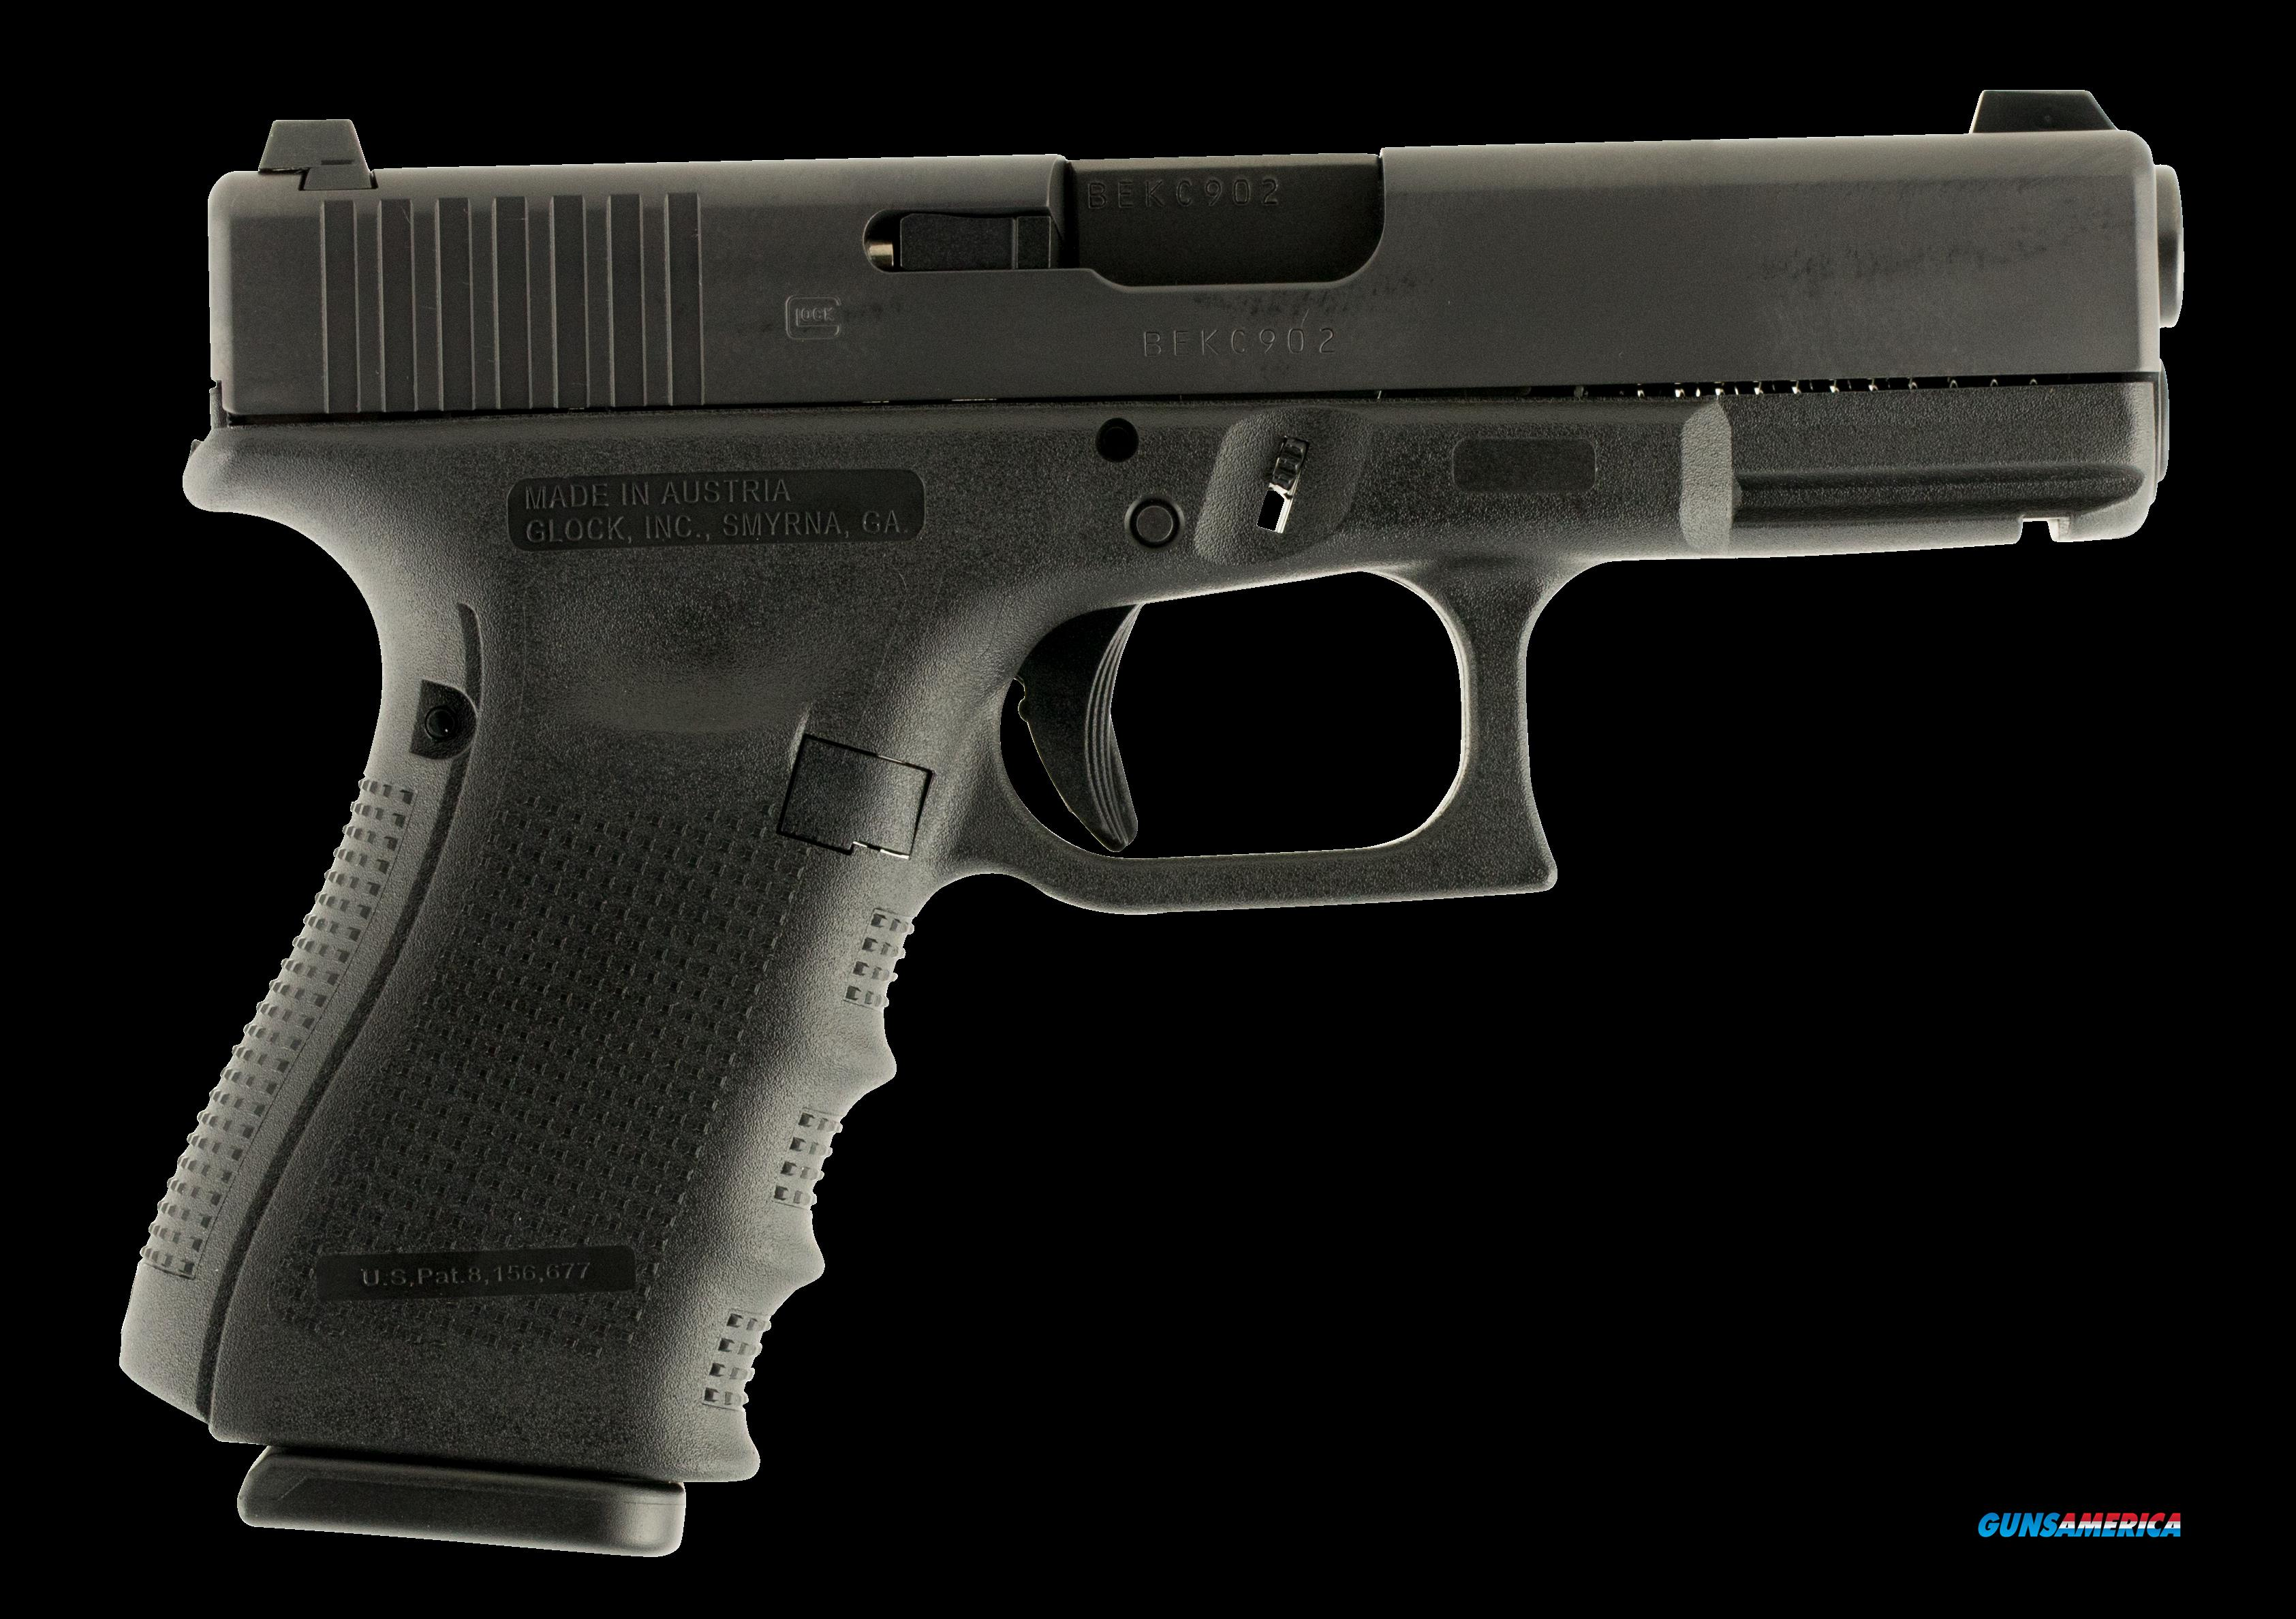 Glock PG1950701 G19 Gen 4 Double 9mm Luger   Black Interchangeable Backstrap Grip  Guns > Pistols > G Misc Pistols